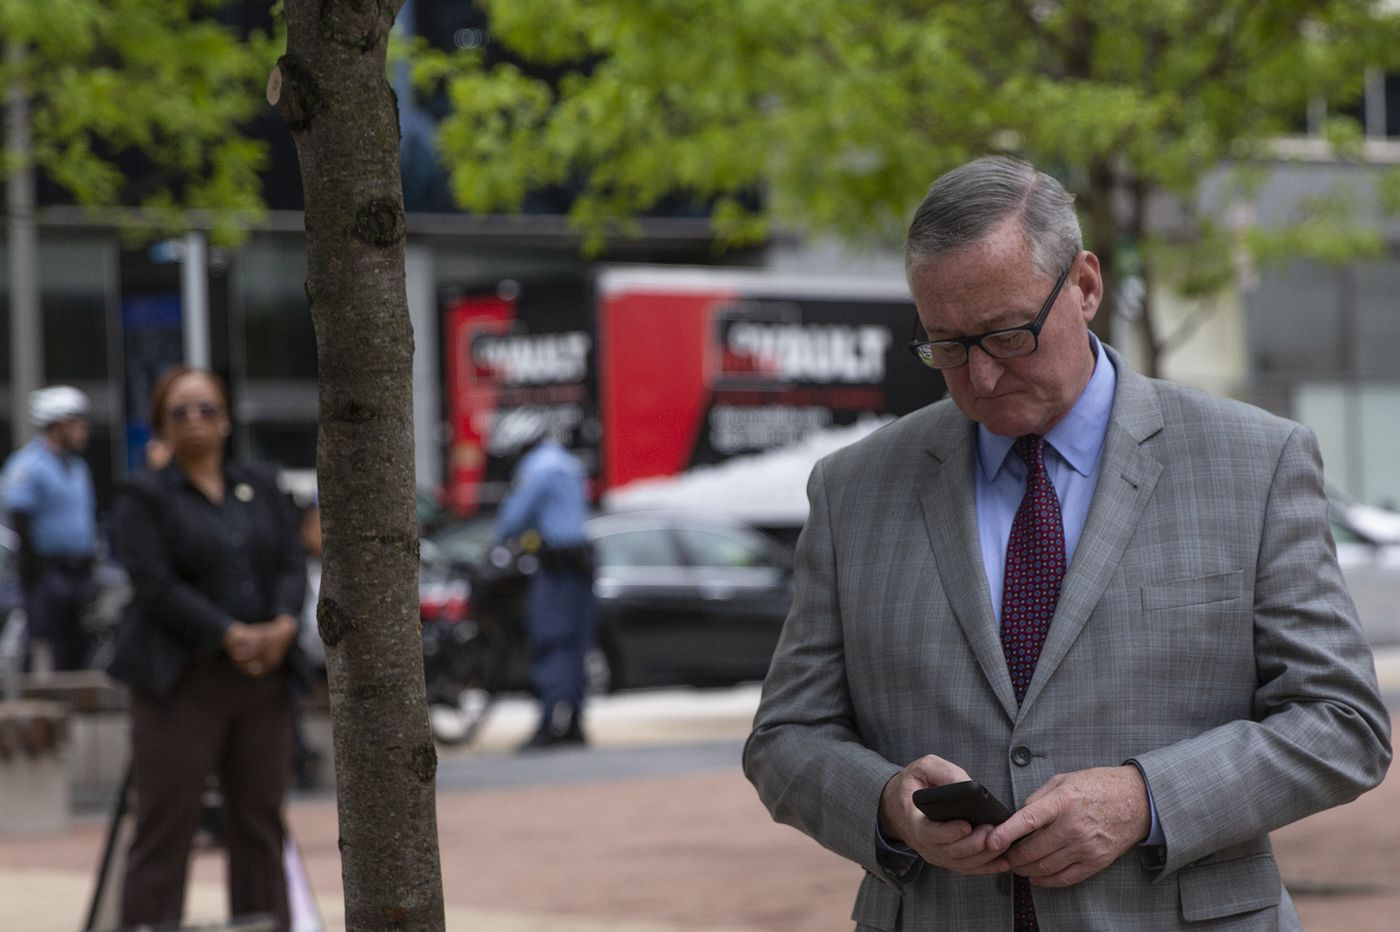 Kenney admin's new policy: Don't text city business; don't use personal devices